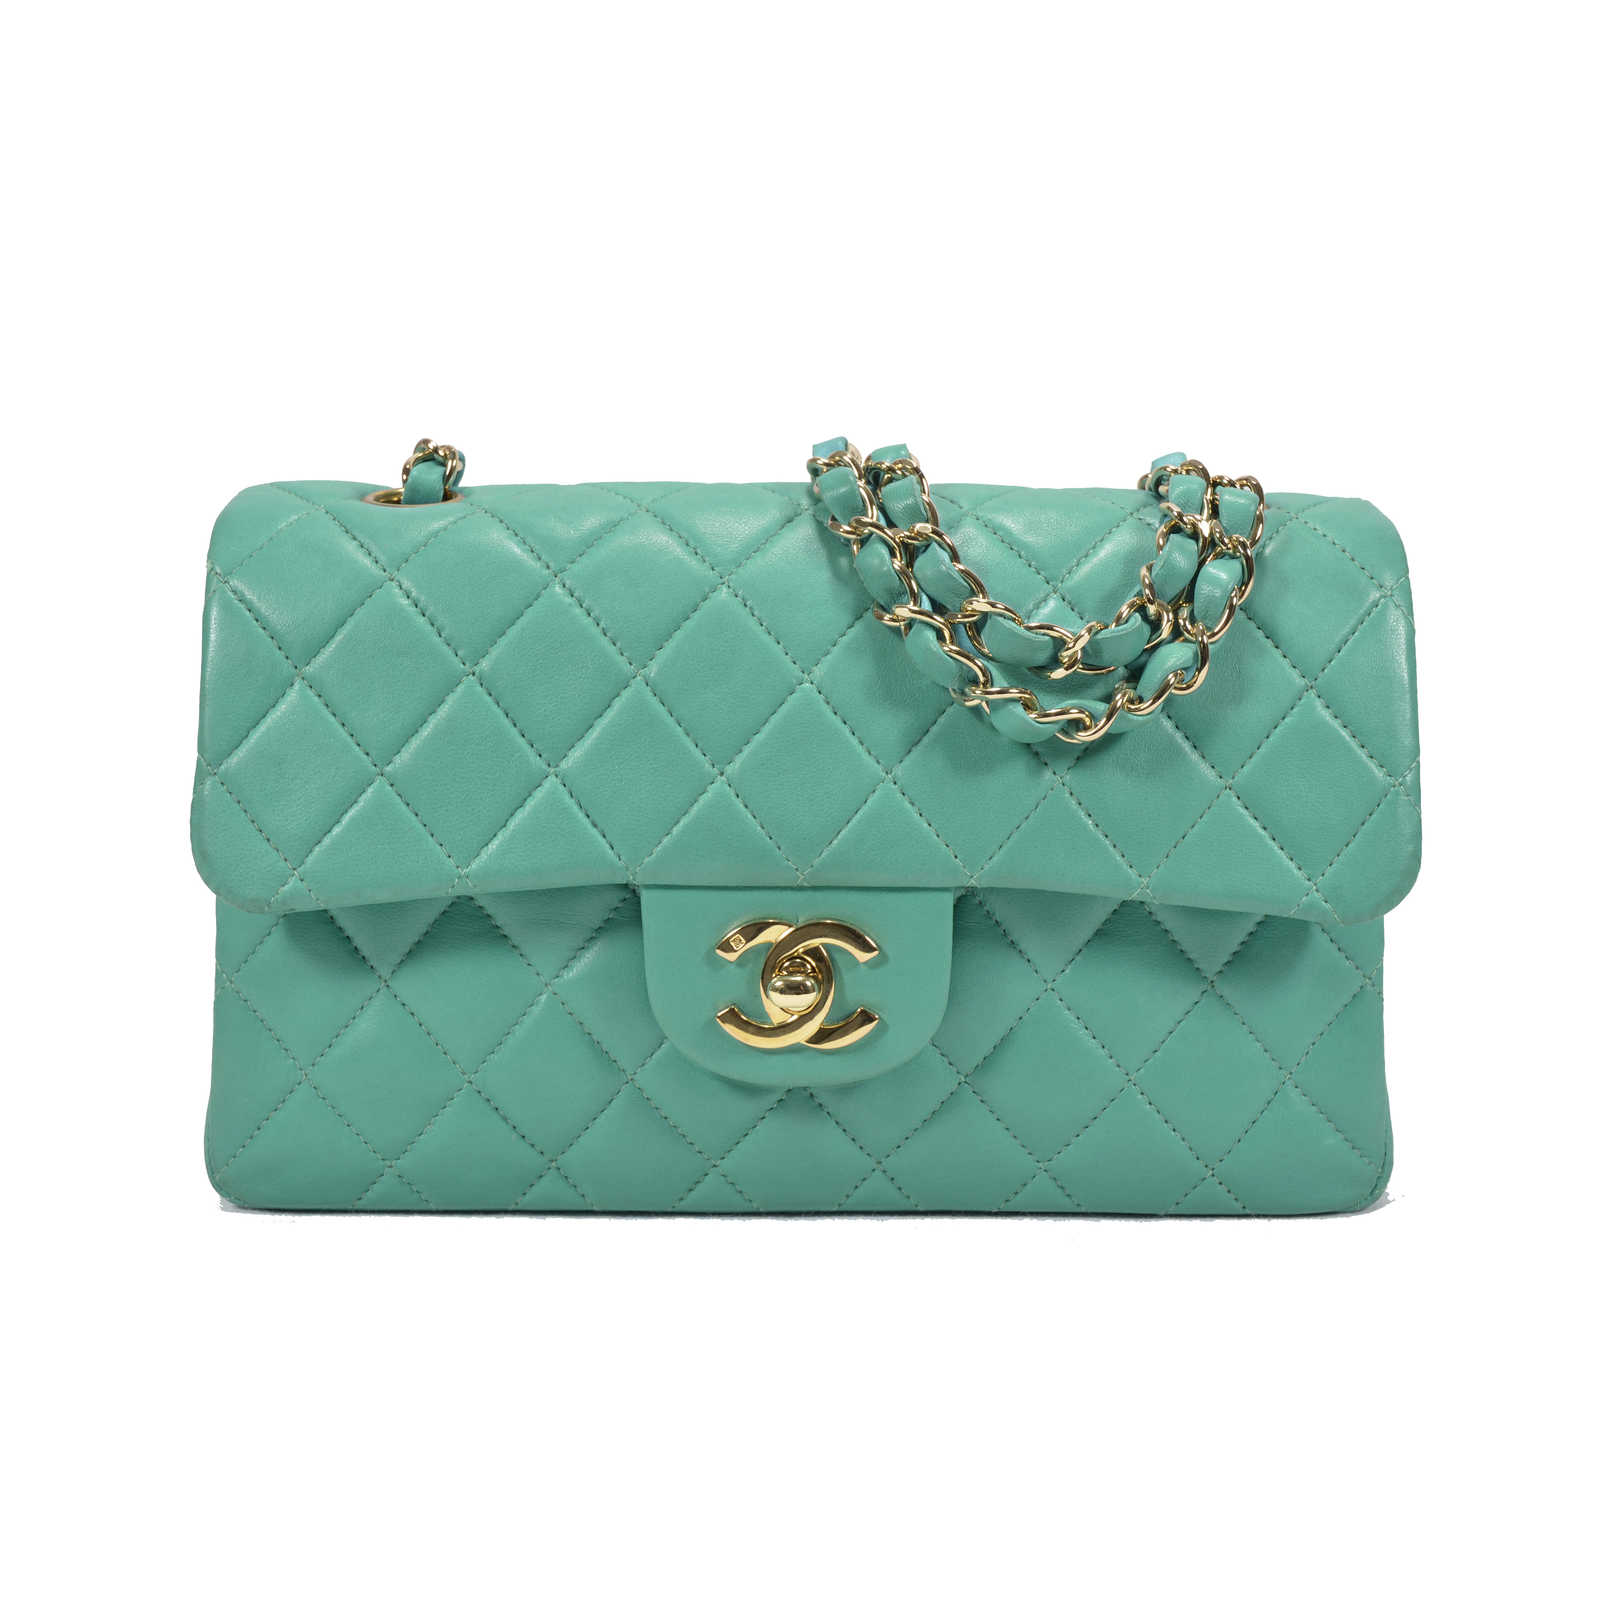 ec5bf44c5fbf Authentic Second Hand Chanel Turquoise Classic Double Flap Bag  (PSS-051-00145) ...